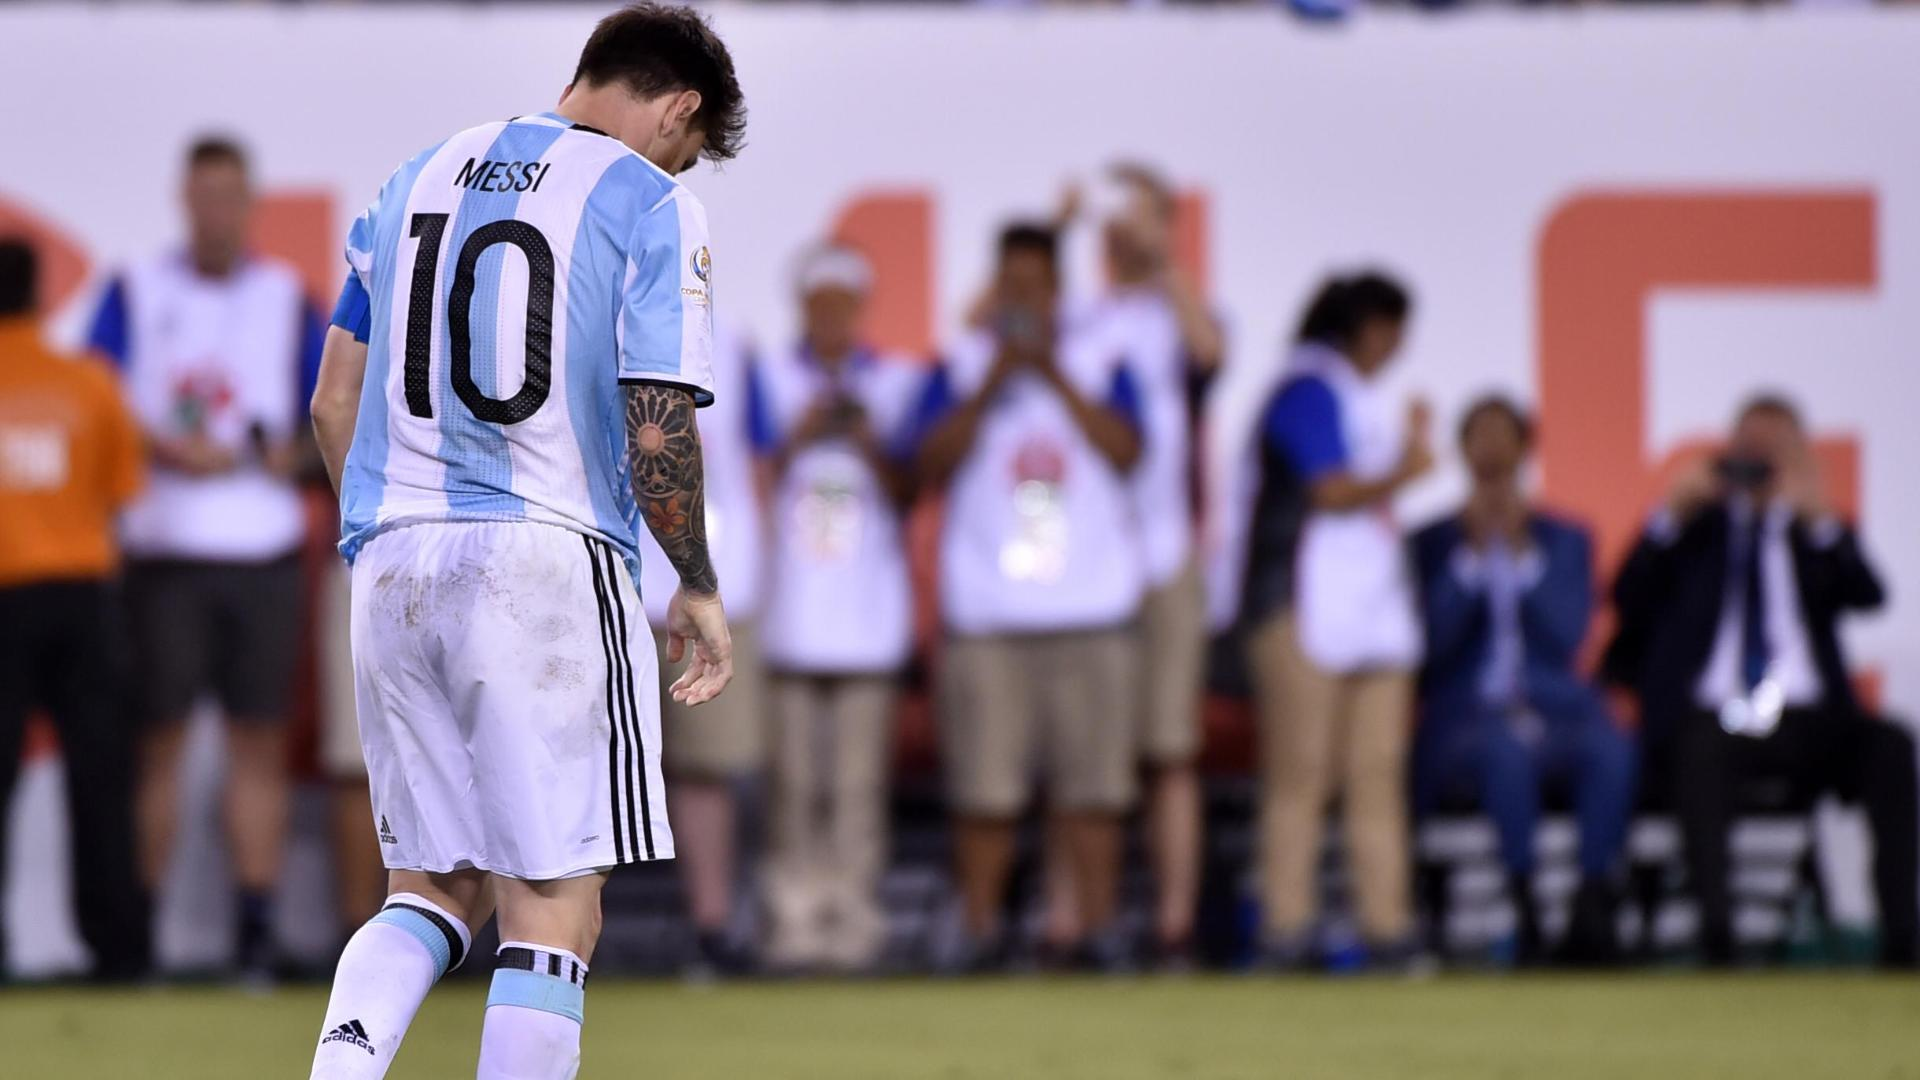 Vickery: Is this really it for Messi?